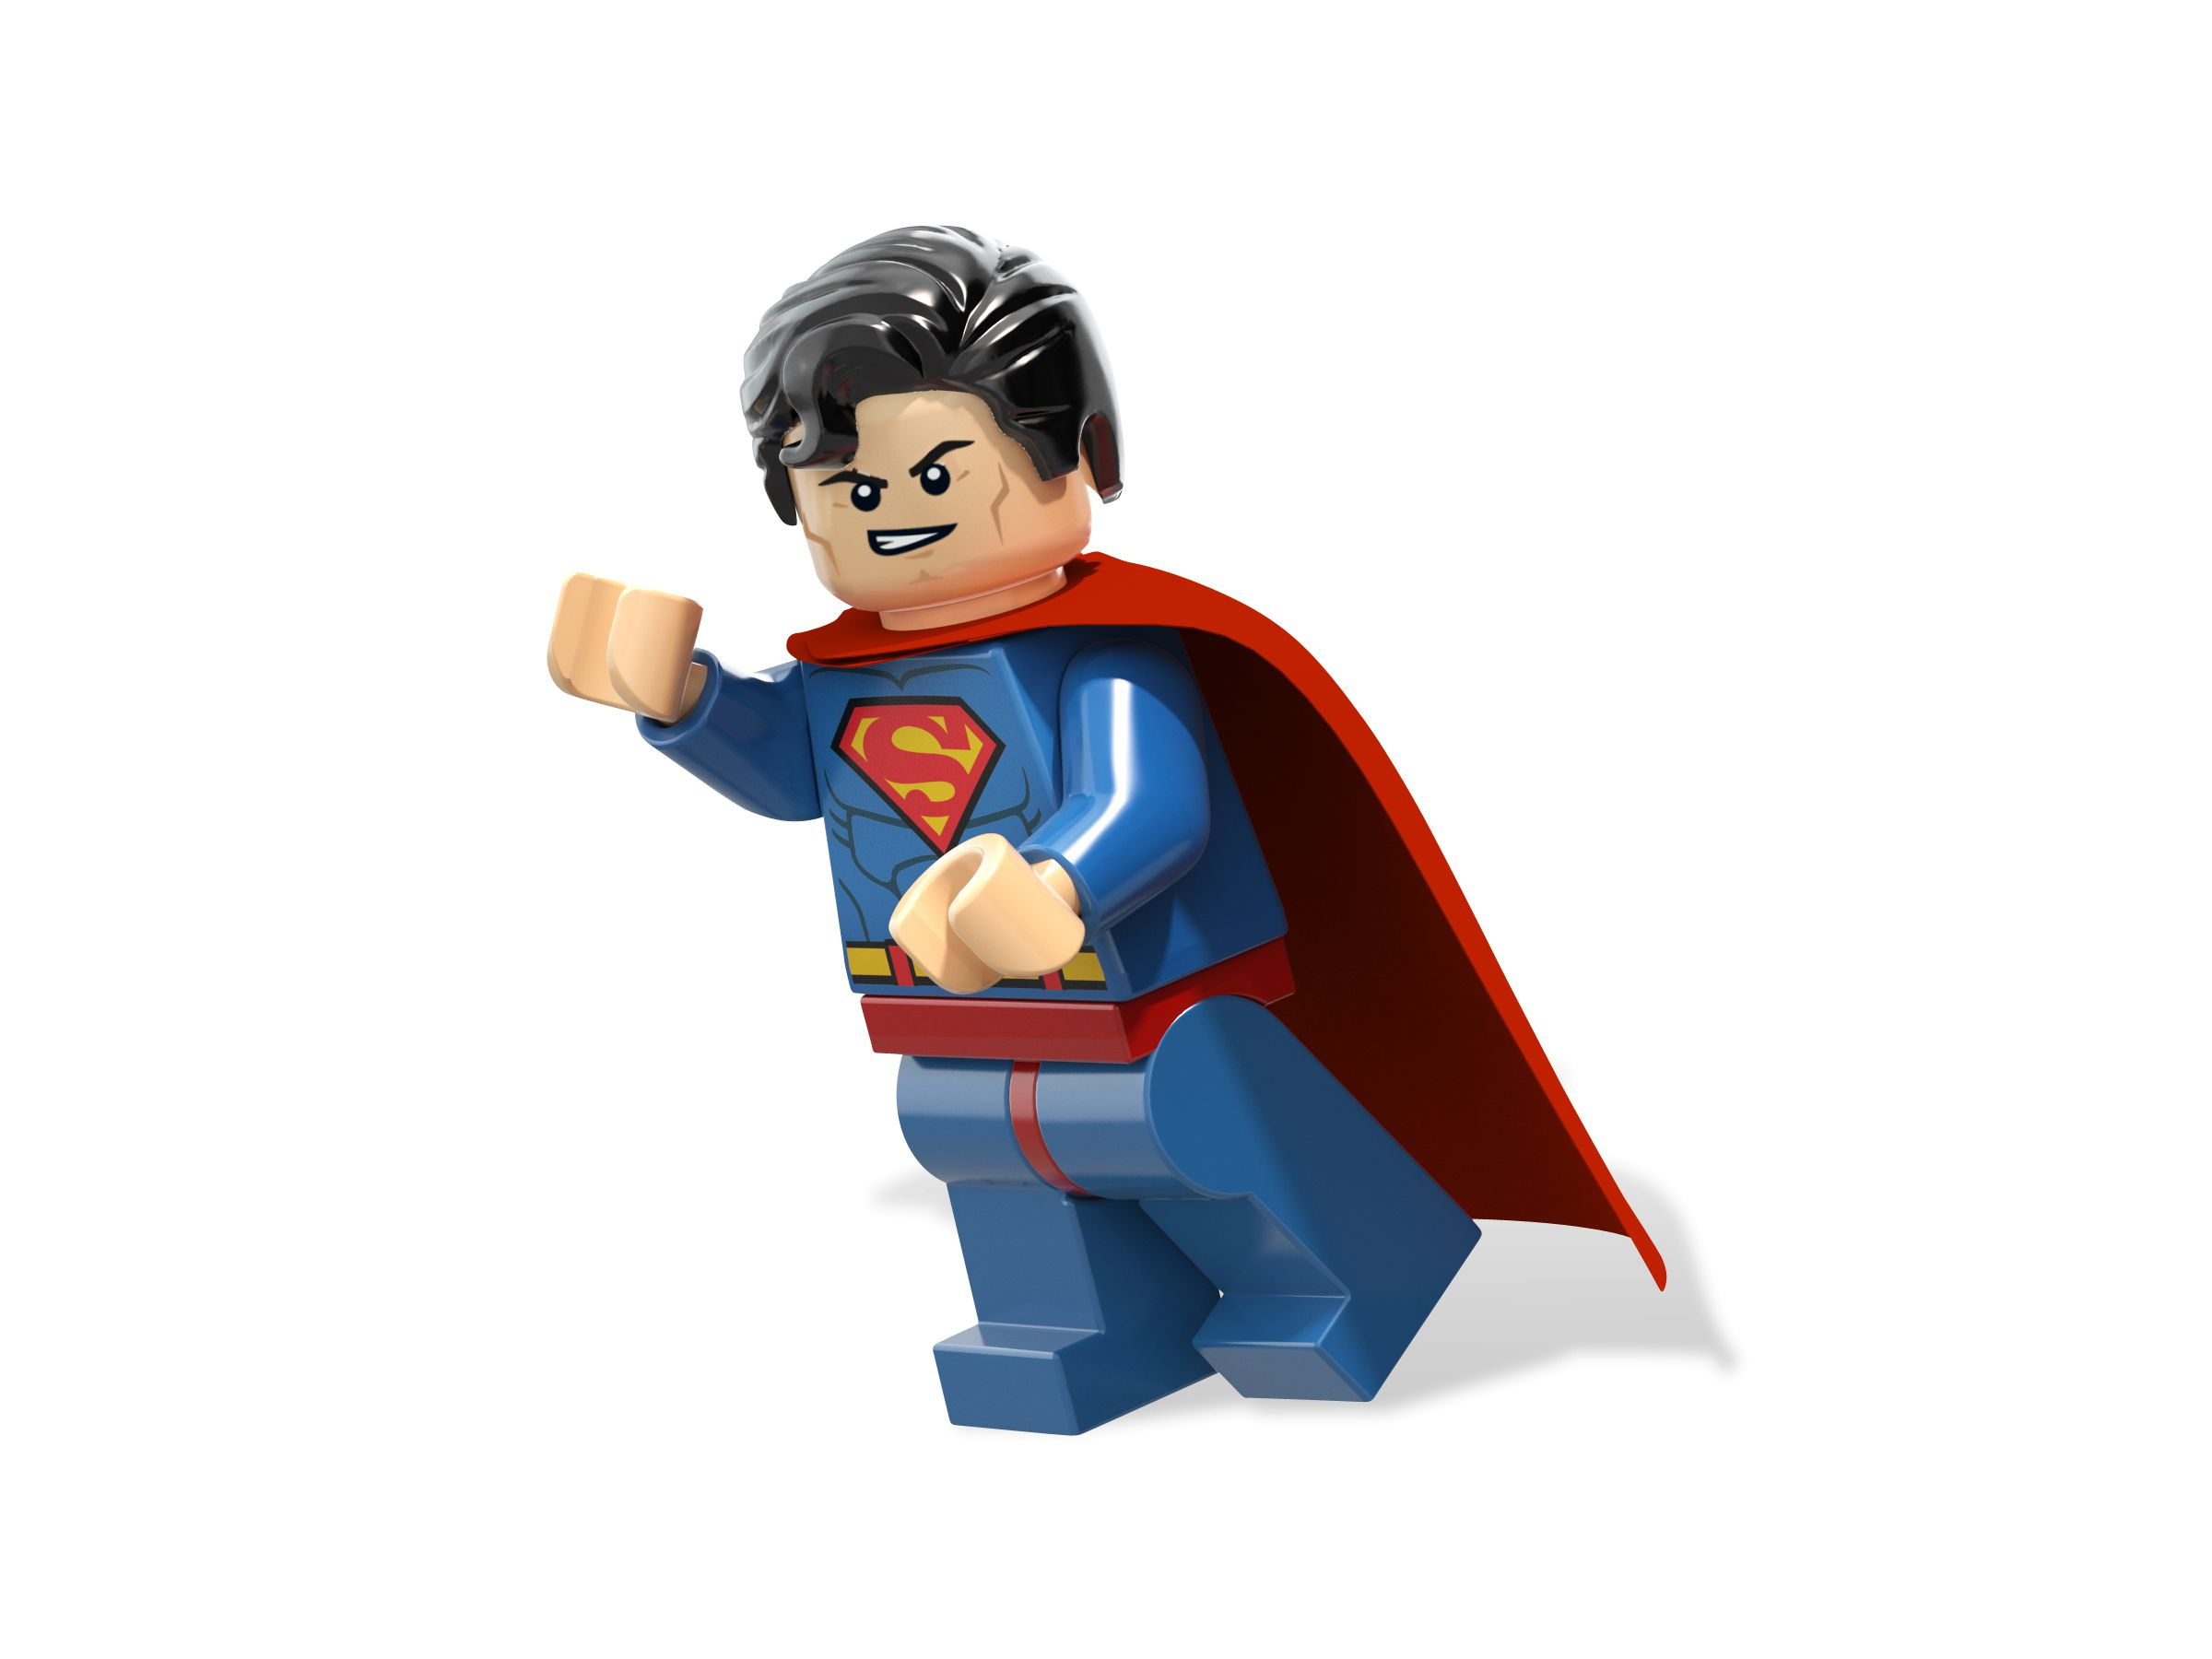 LEGO Super Heroes 6862 Superman Vs Power Armor Lex LEGO_6862_alt5.jpg